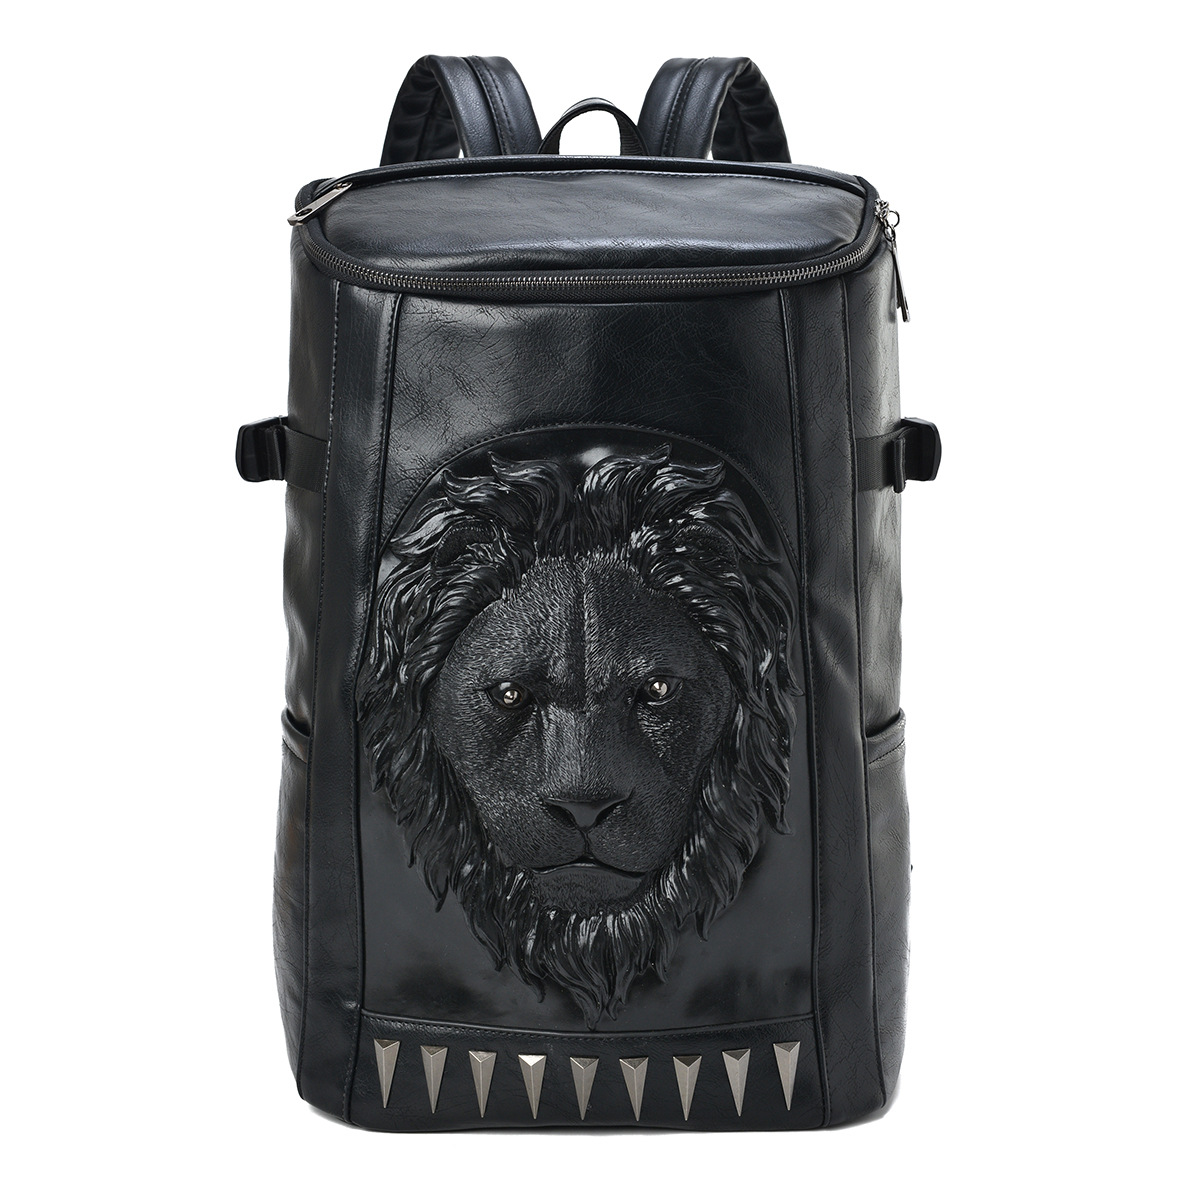 ФОТО Fashion 3D lion head printed backpacks large capacity men's PU leather bags black rivet animal zipper travel mountaineering bags